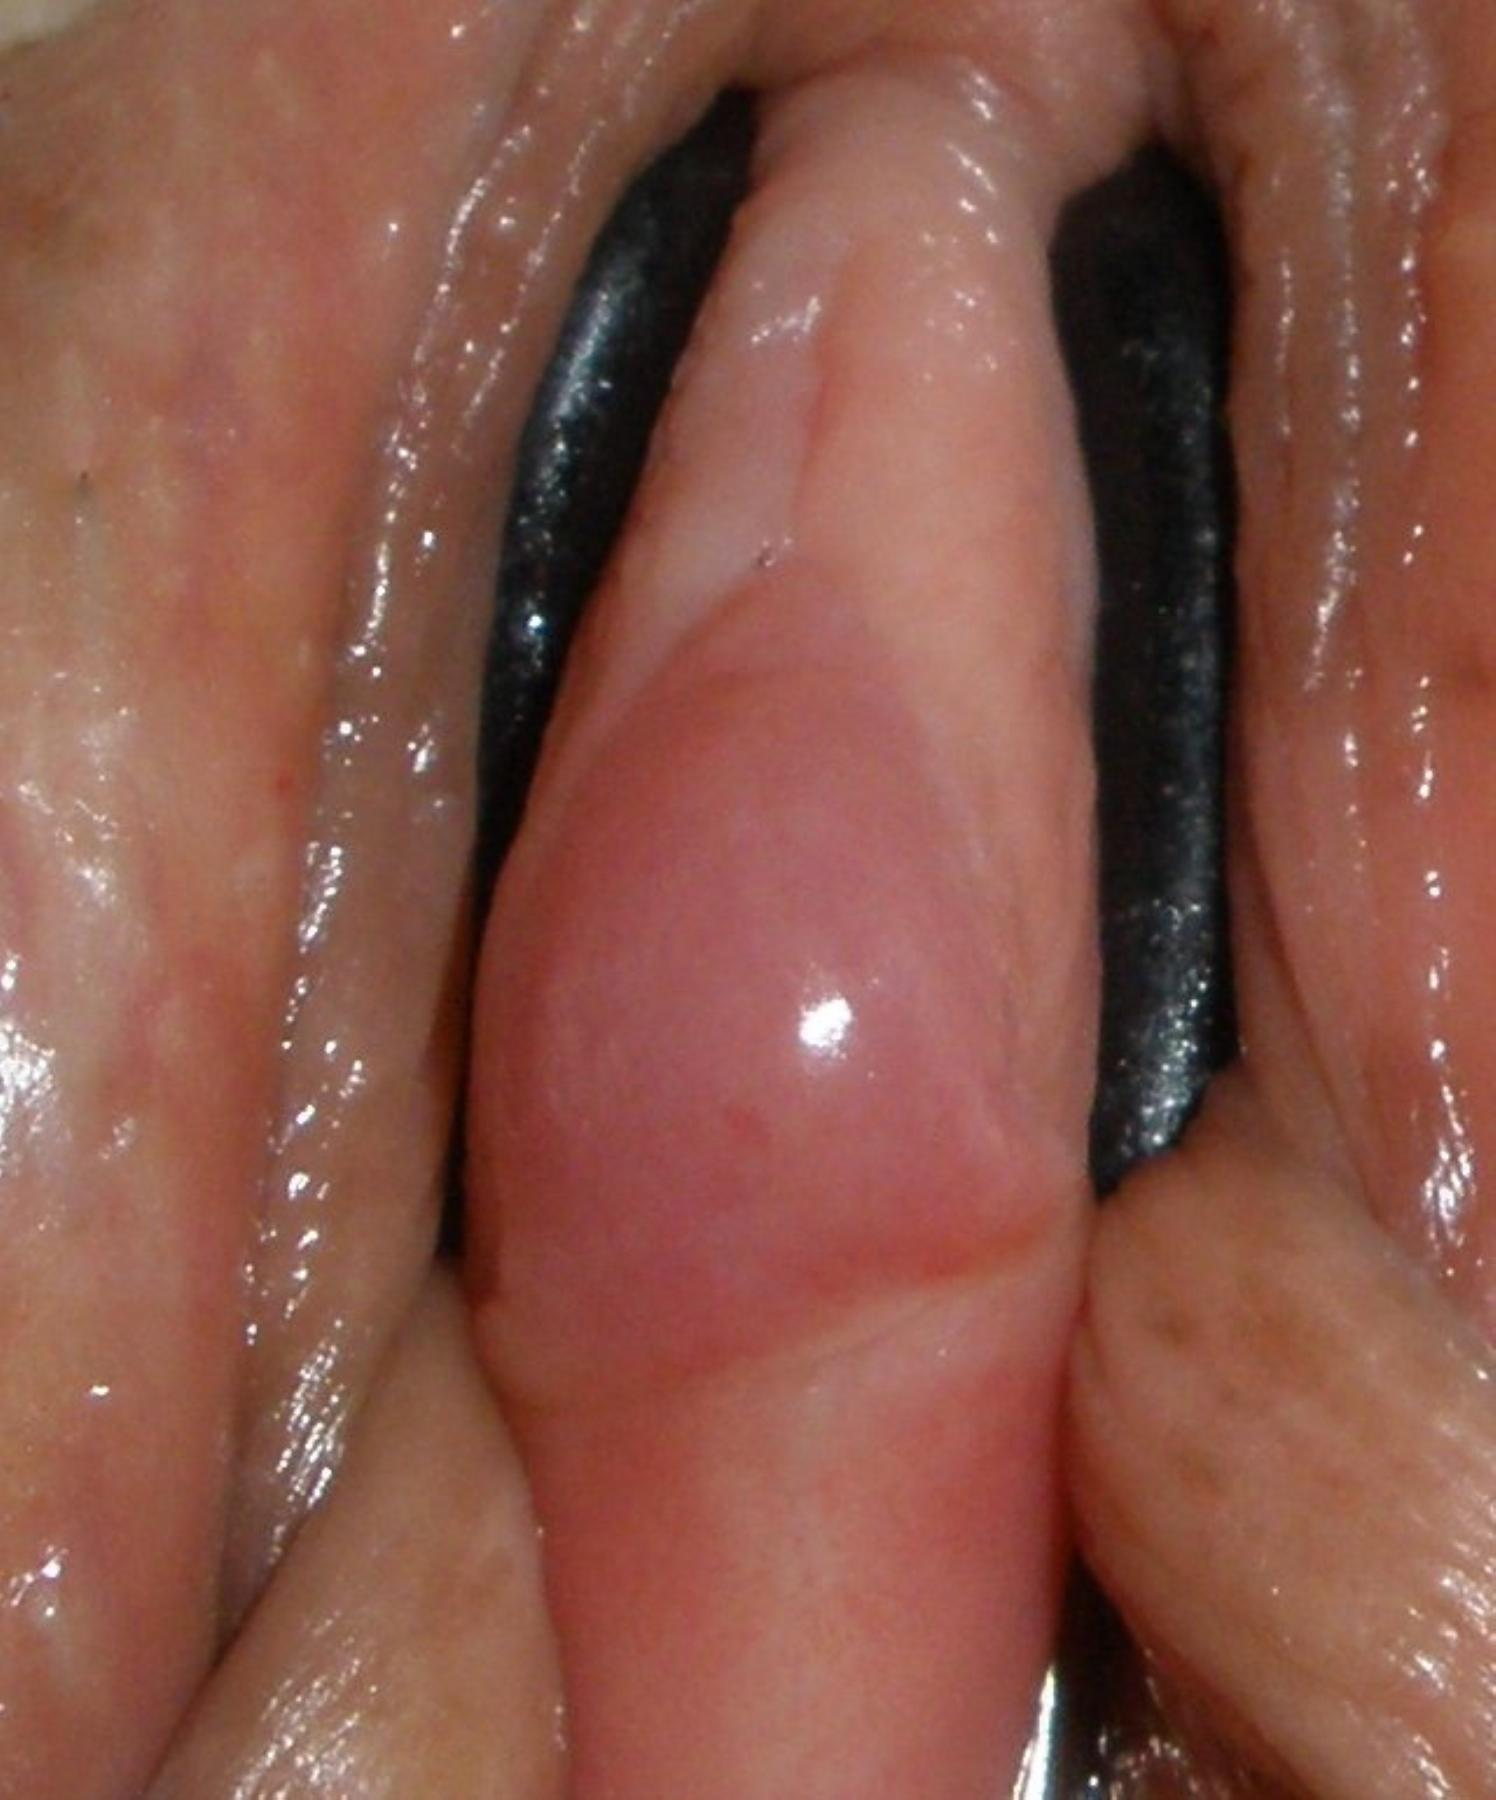 Pity, that Close up swollen clitoris that